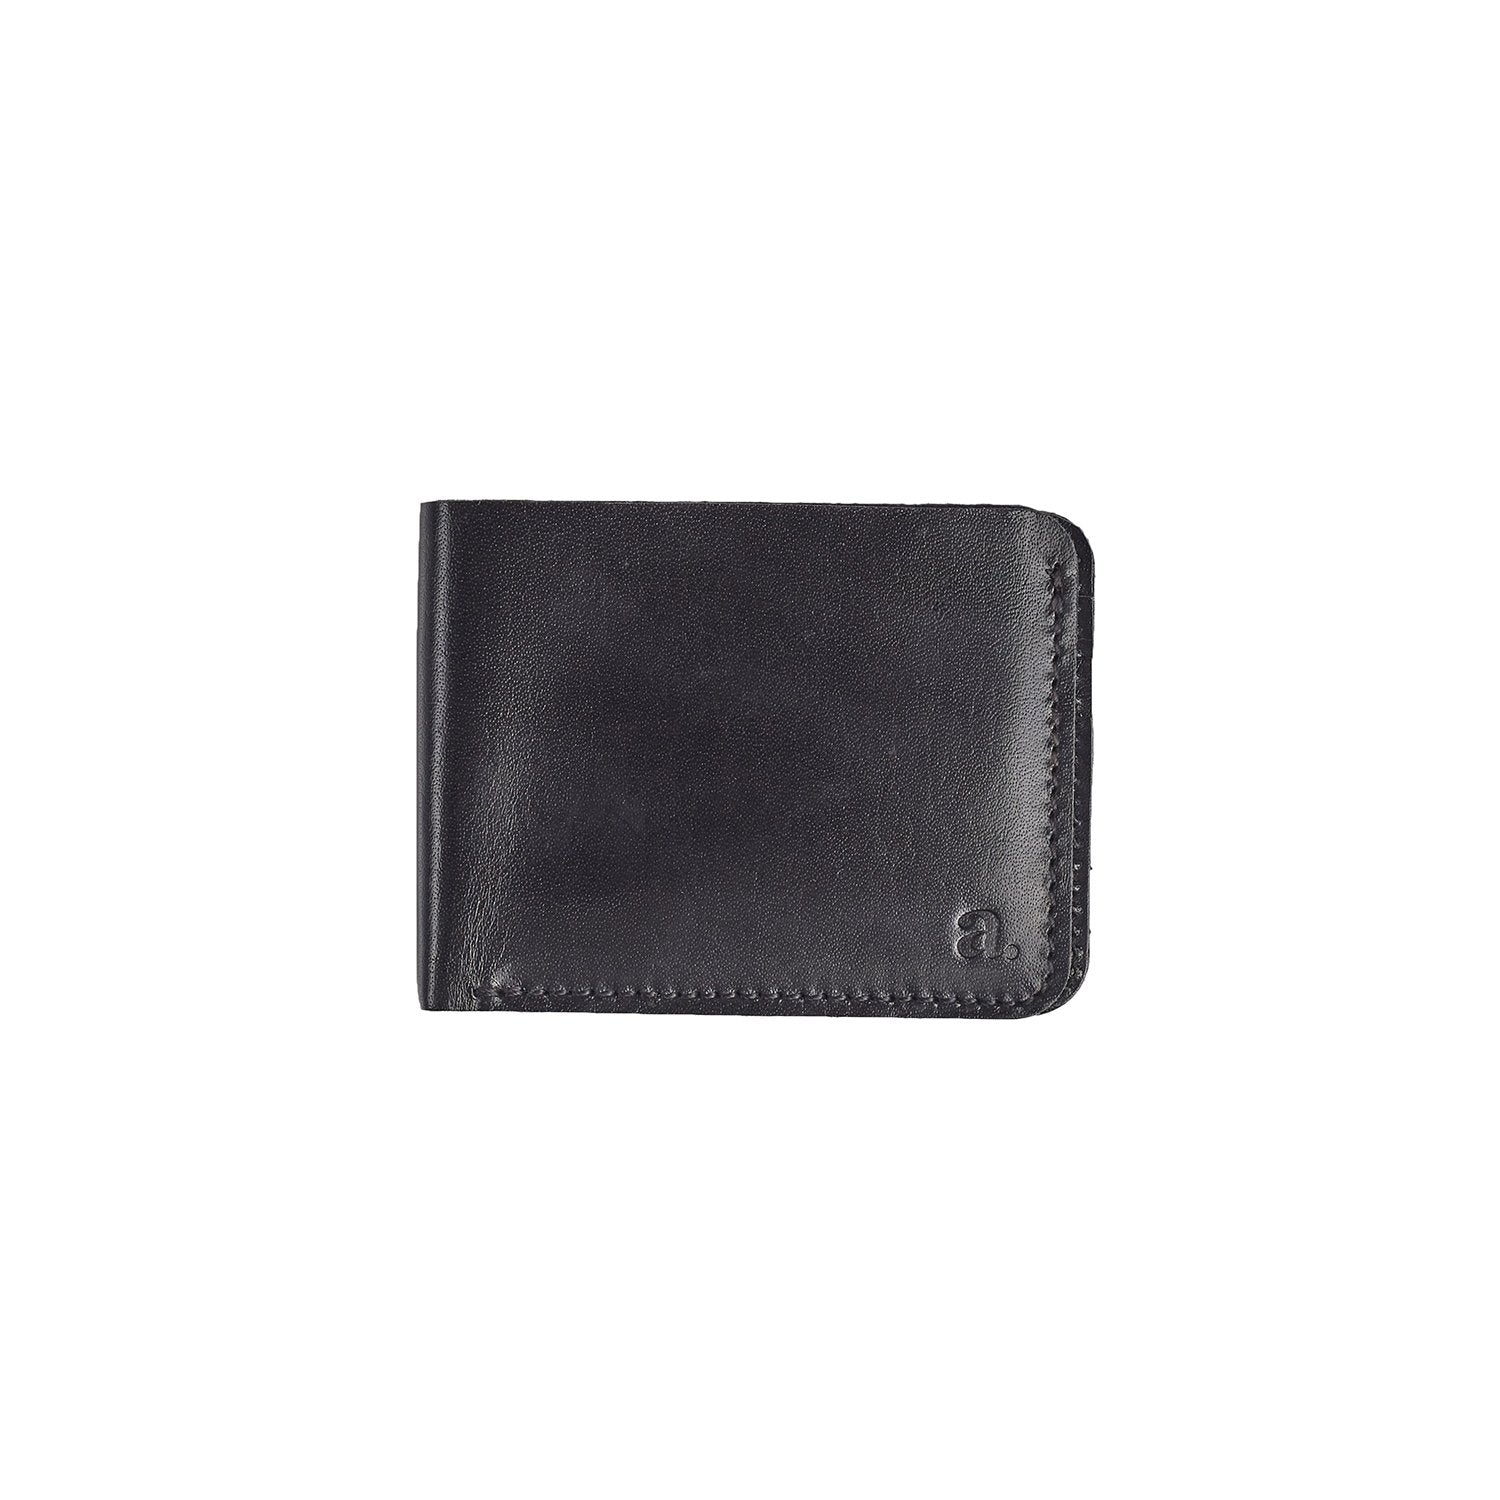 Raw Edge Bifold Wallet Leather Goods Adesso Accessories Black